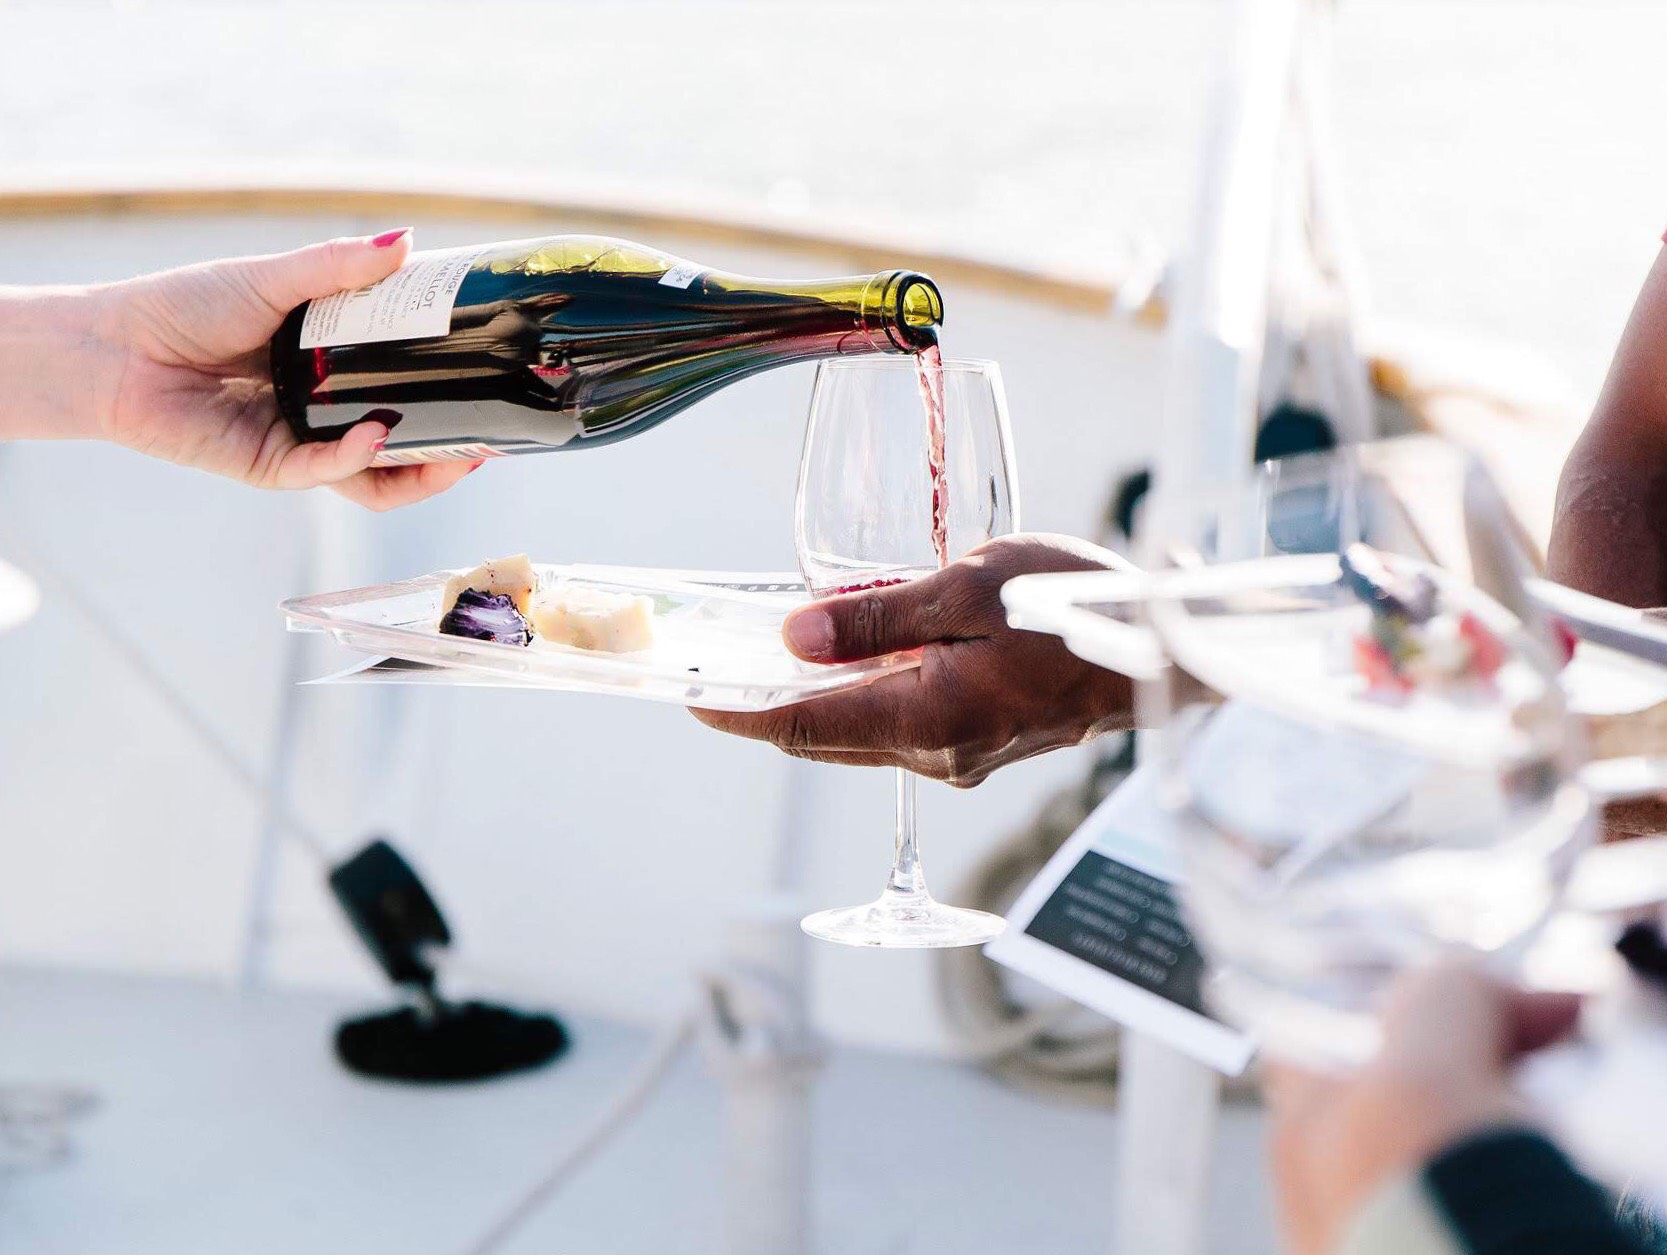 WINE SAILS W/ WINE WISE - A wine education course beautifully paired with a sail on Casco Bay. Taste wines from a variety of regions, discuss wine styles, grape varieties, and trends. Gain a comprehensive knowledge of wine to bring your appreciation to the next level. Tickets, information and pricing available at winewiseevents.com or (207) 619-4630.